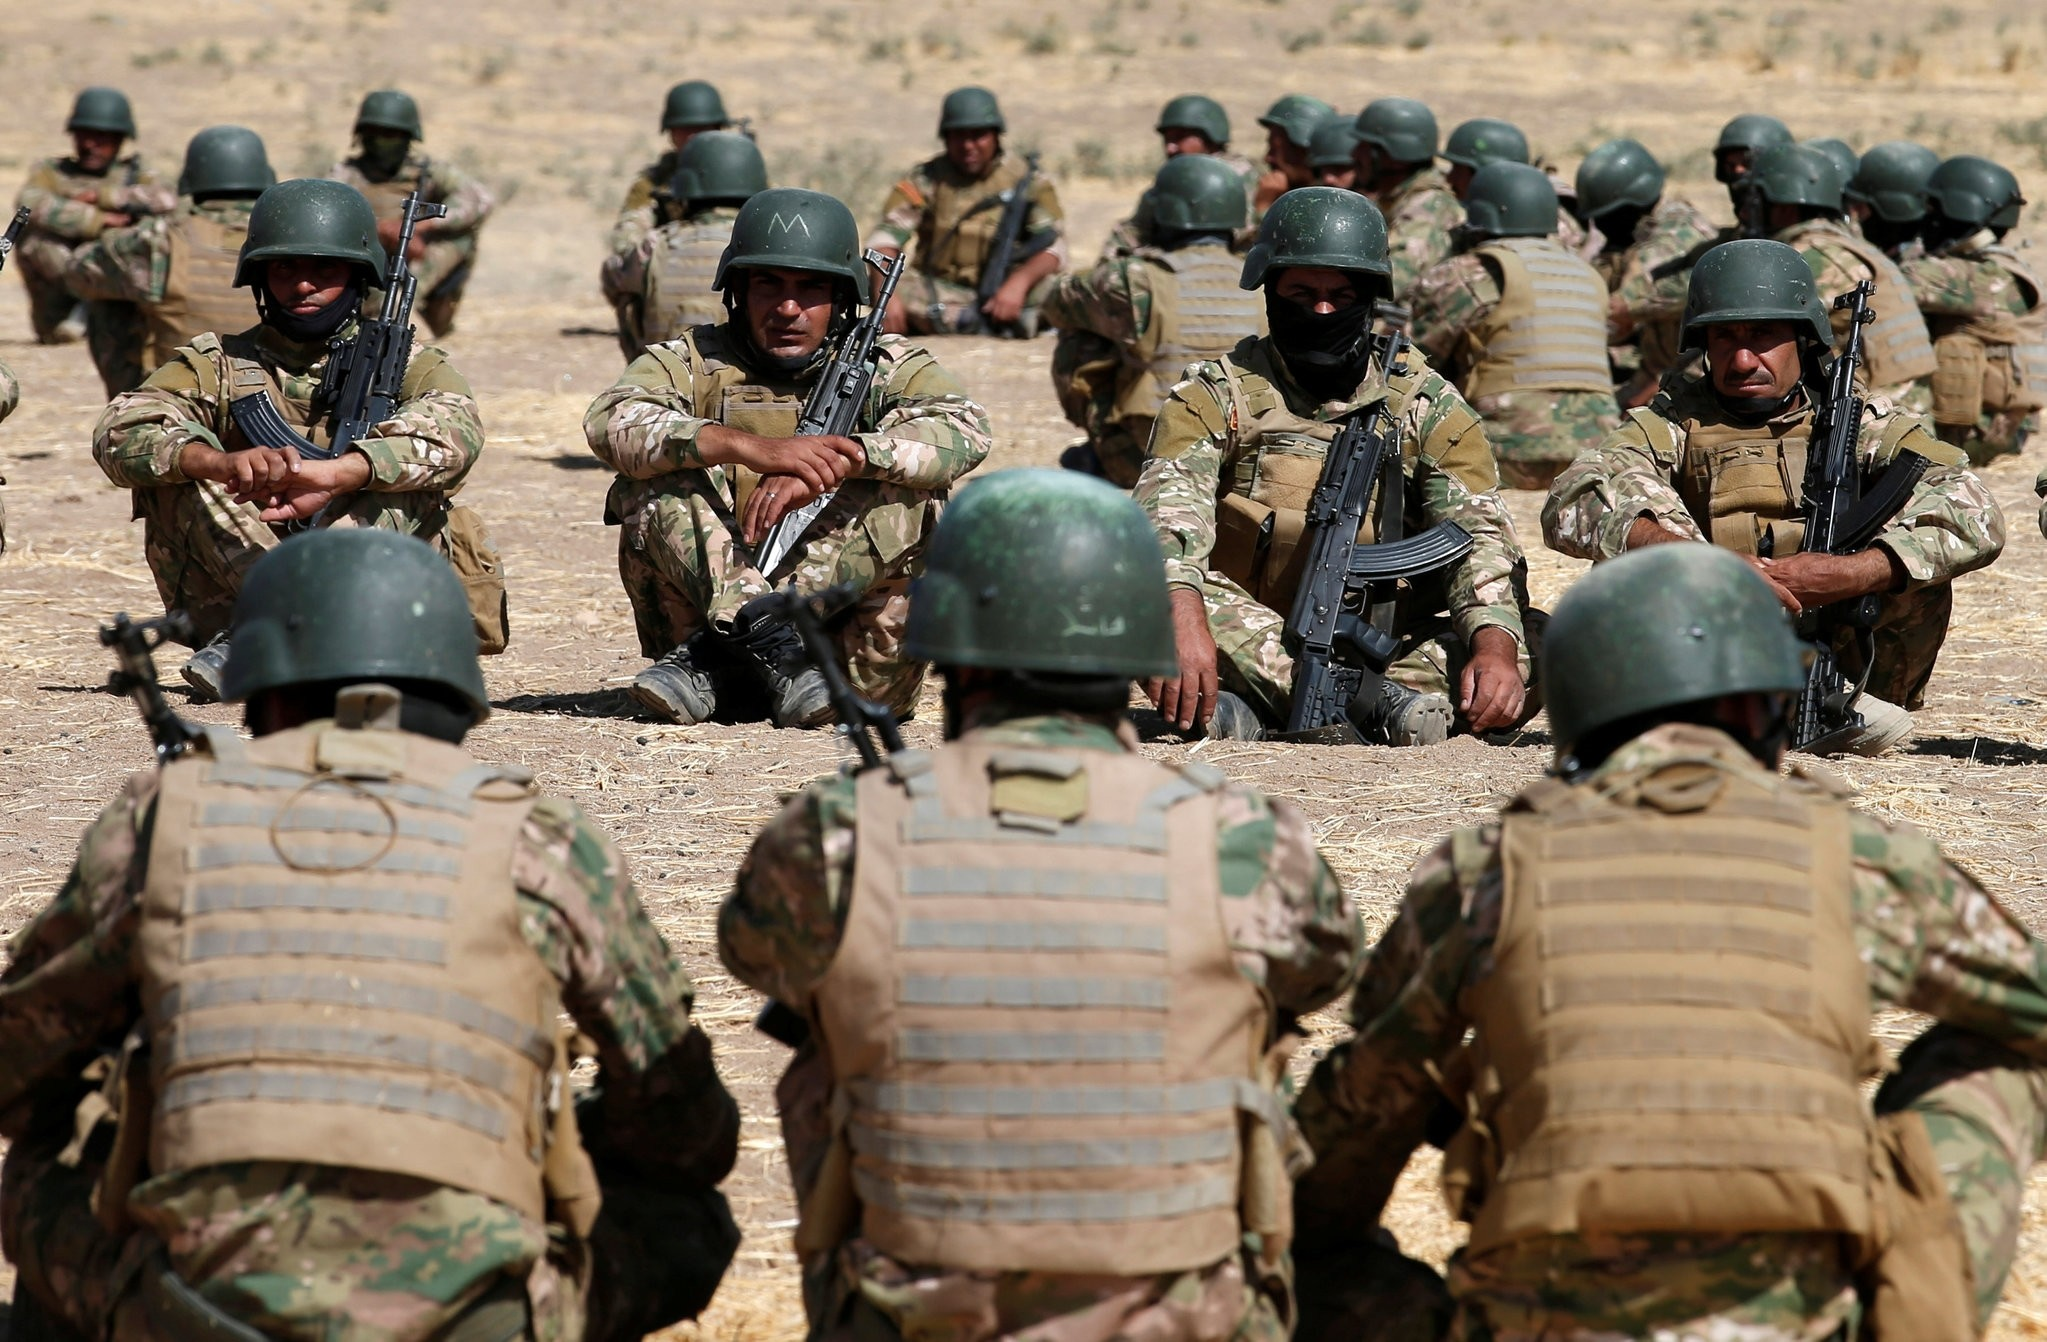 Fighters from predominantly Sunni Arab force take part in a training session before the upcoming battle to recapture Mosul in Bashiqa, October 6, 2016. (REUTERS Photo)